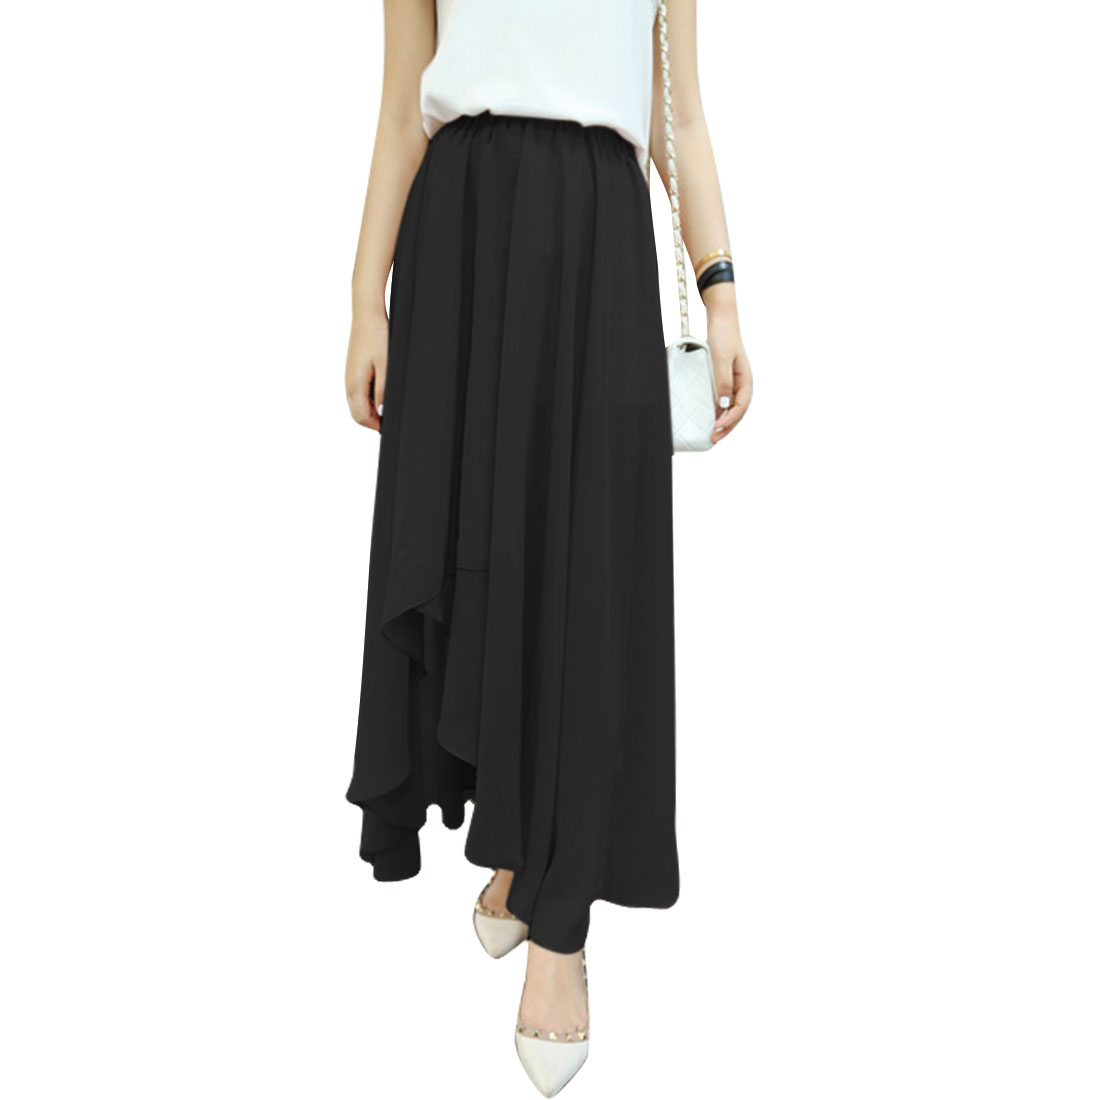 Woman Chic Elastic Waist Irregular Hem Design Black Chiffon Long Skirt XS